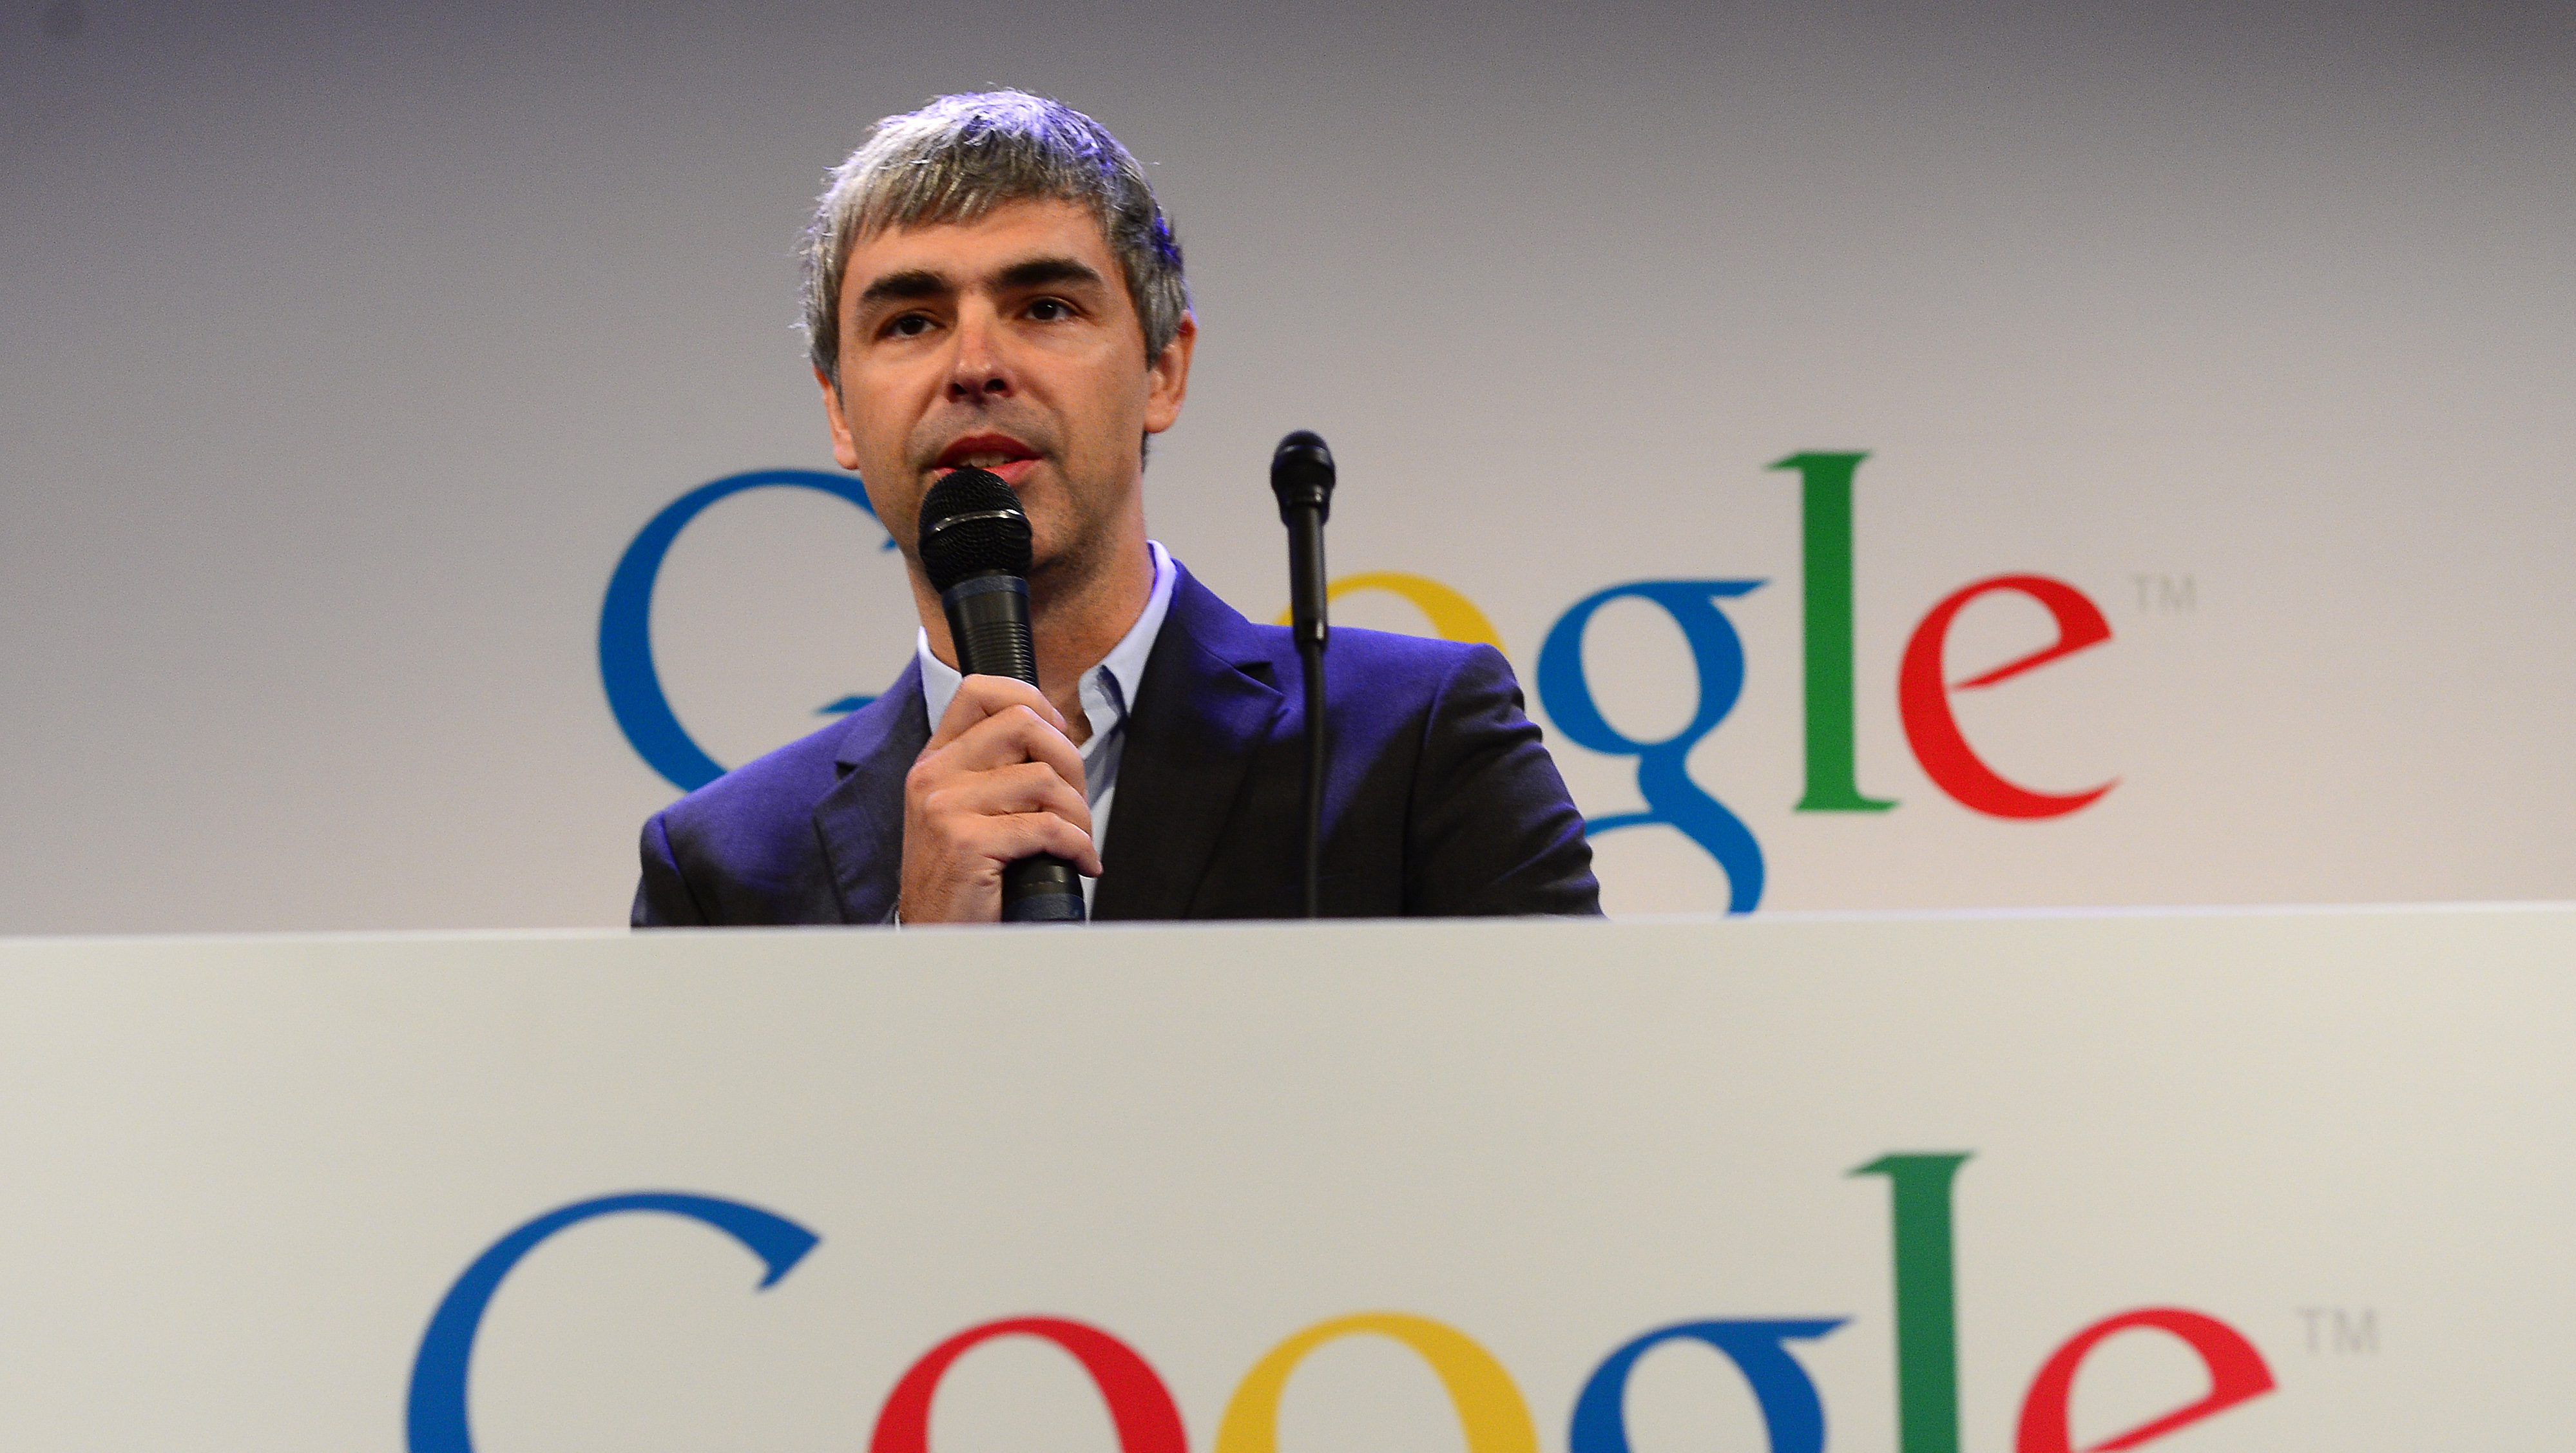 Larry Page, Larry Page Google, Google founder